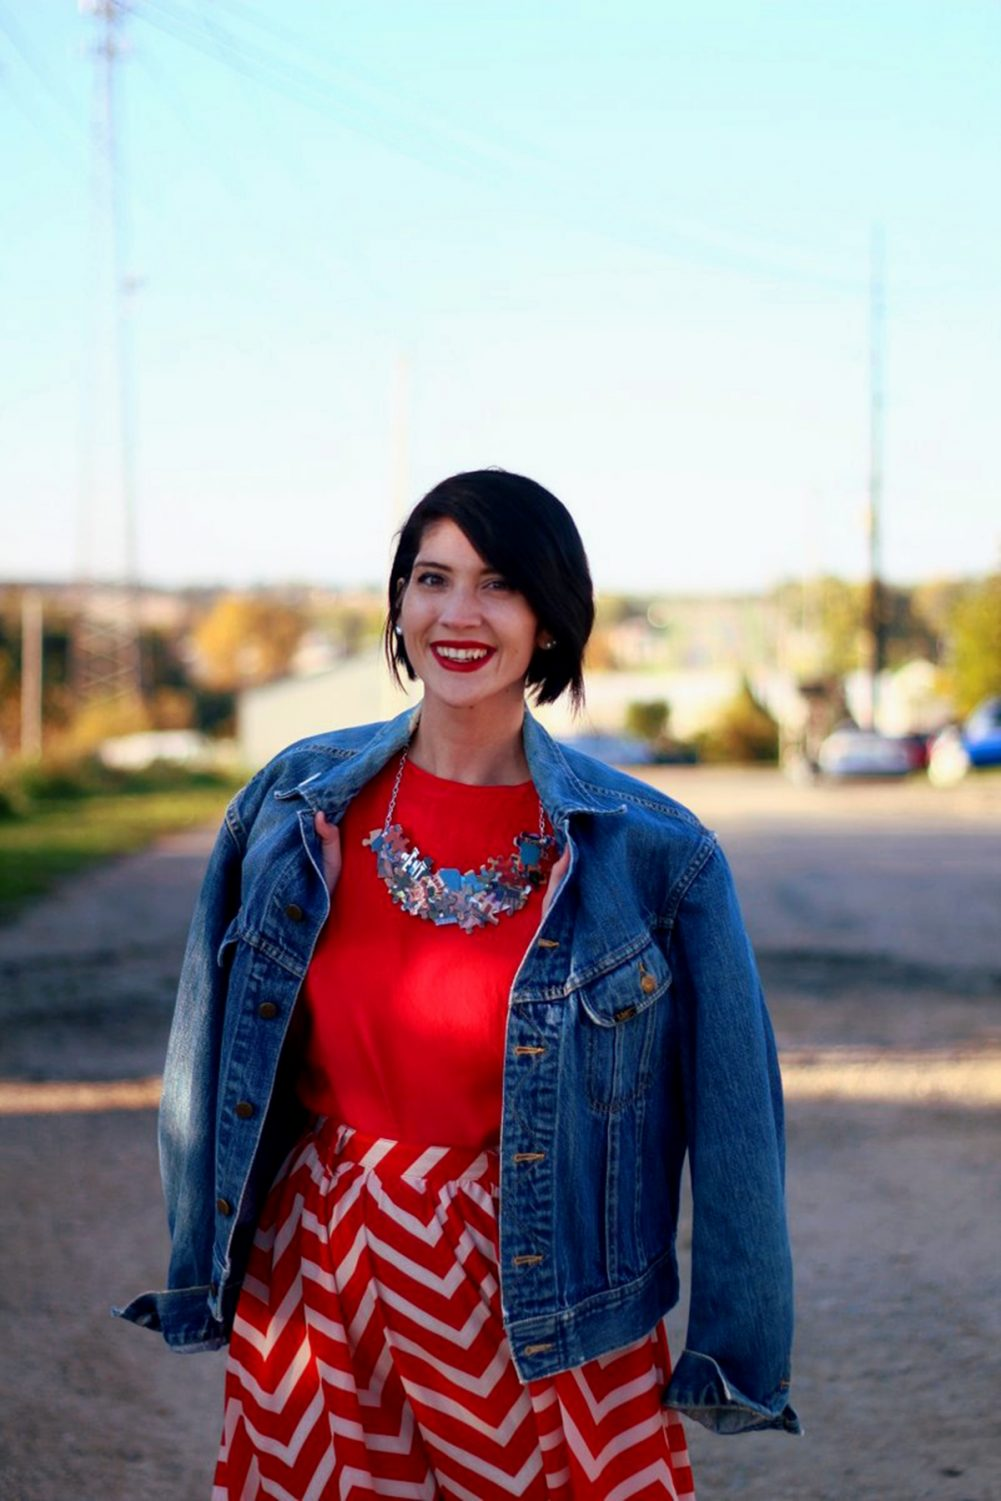 Outfit: Vintage red top, DIY puzzle piece necklace, red lipstick, thrifted orange chevron skirt, vintage denim jacket